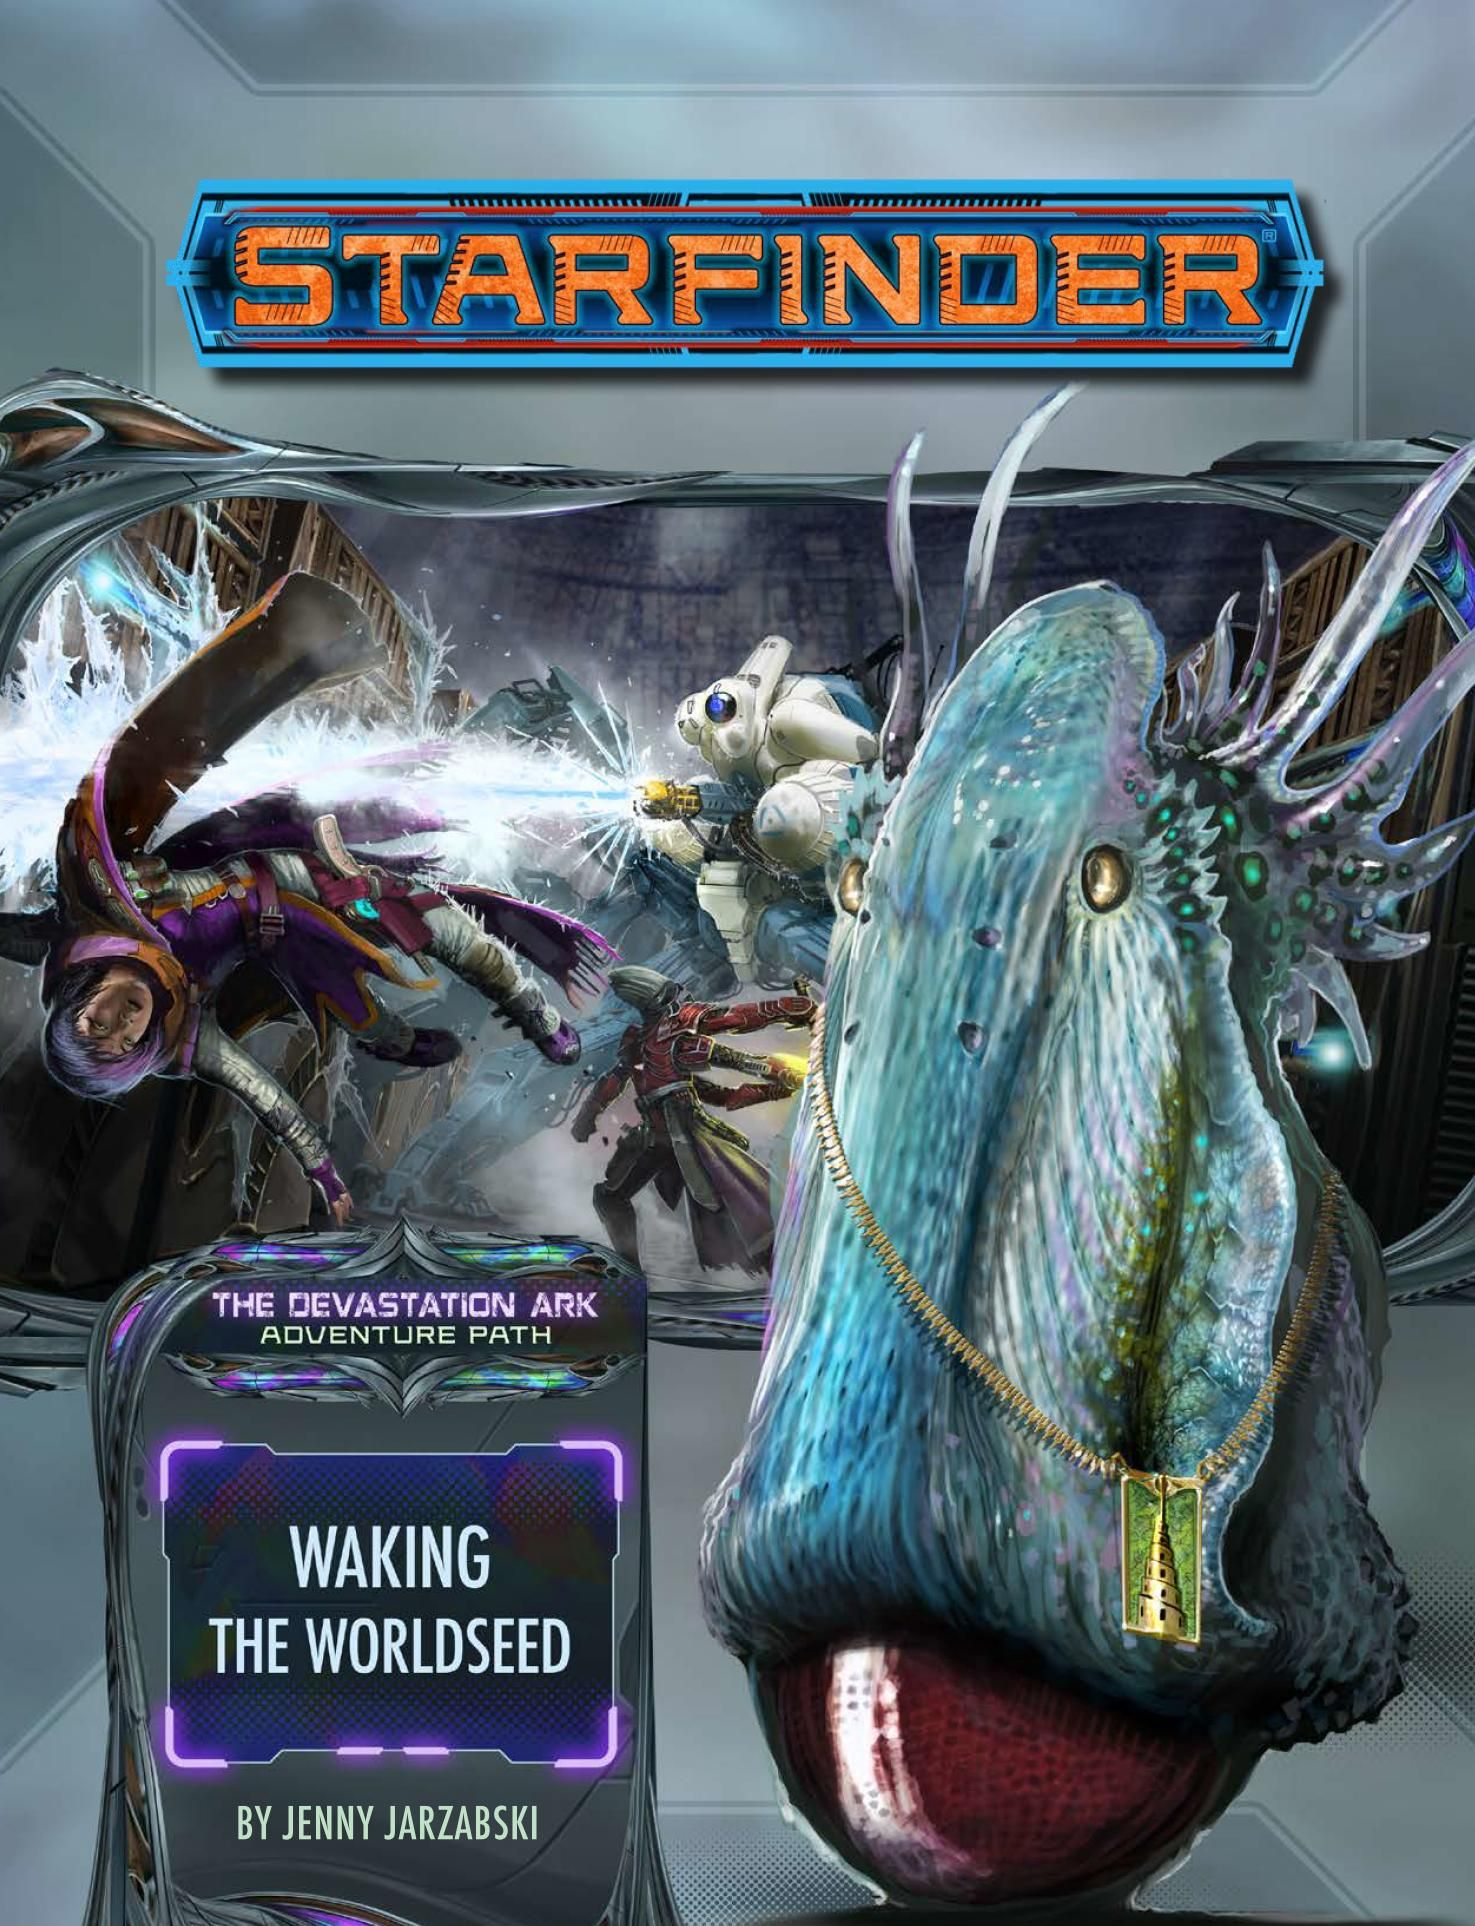 Starfinder RPG: Adventure Path - Devastation Ark Part 1 - Waking the Worldseed